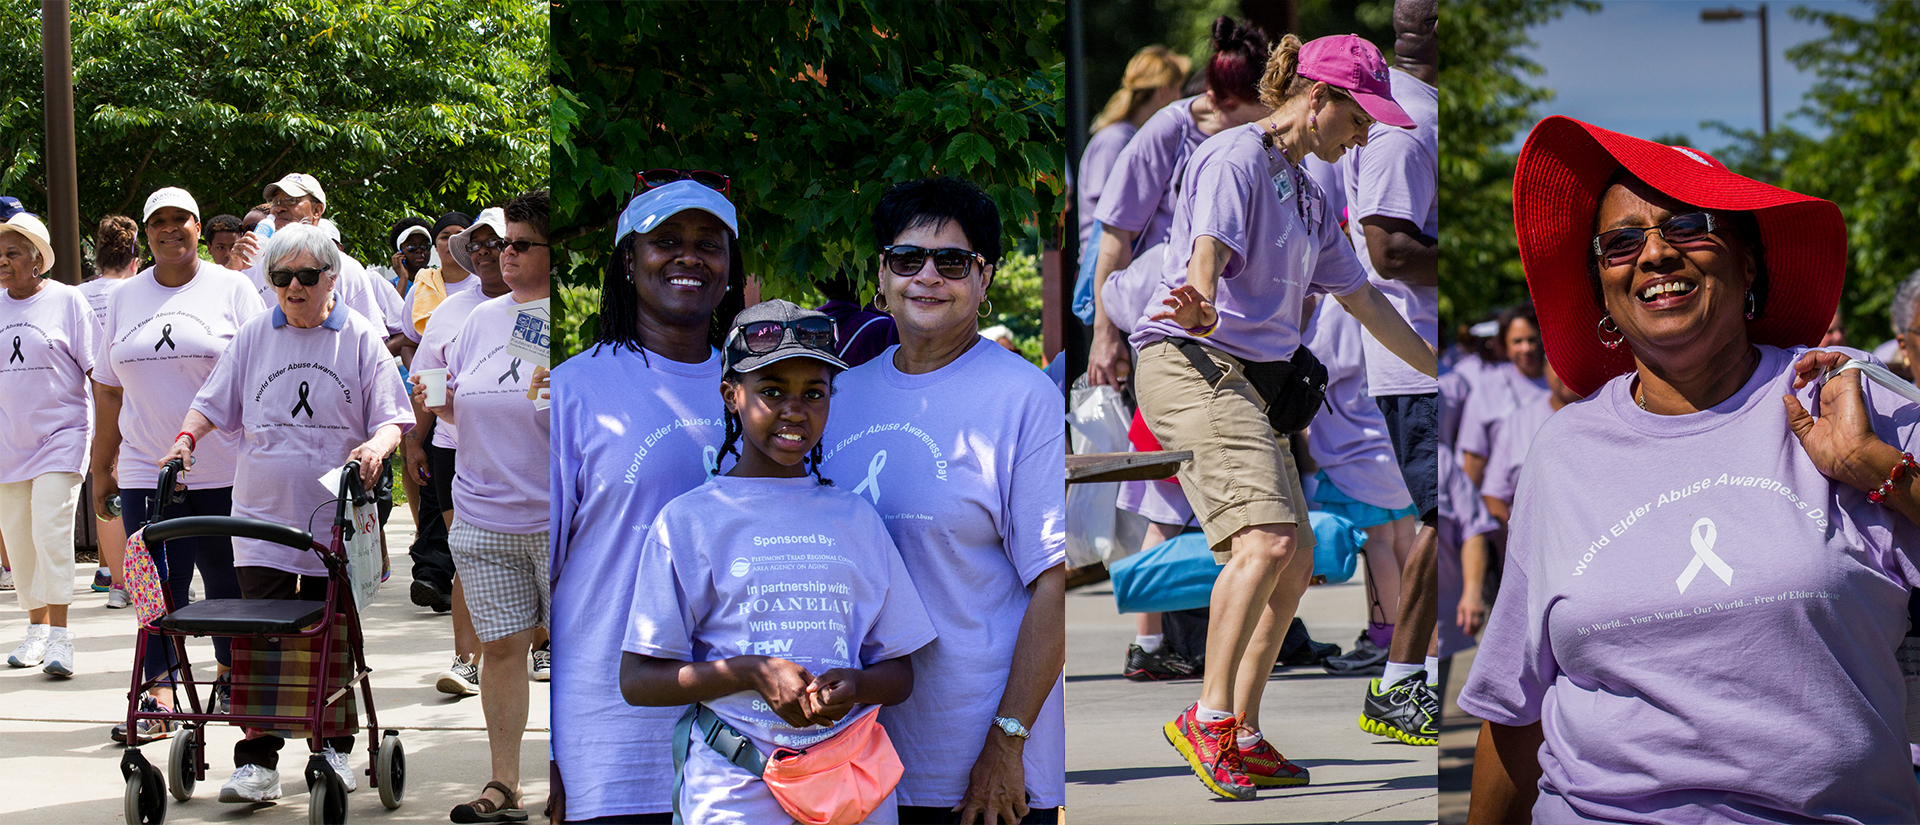 Elder Abuse Walk Collage